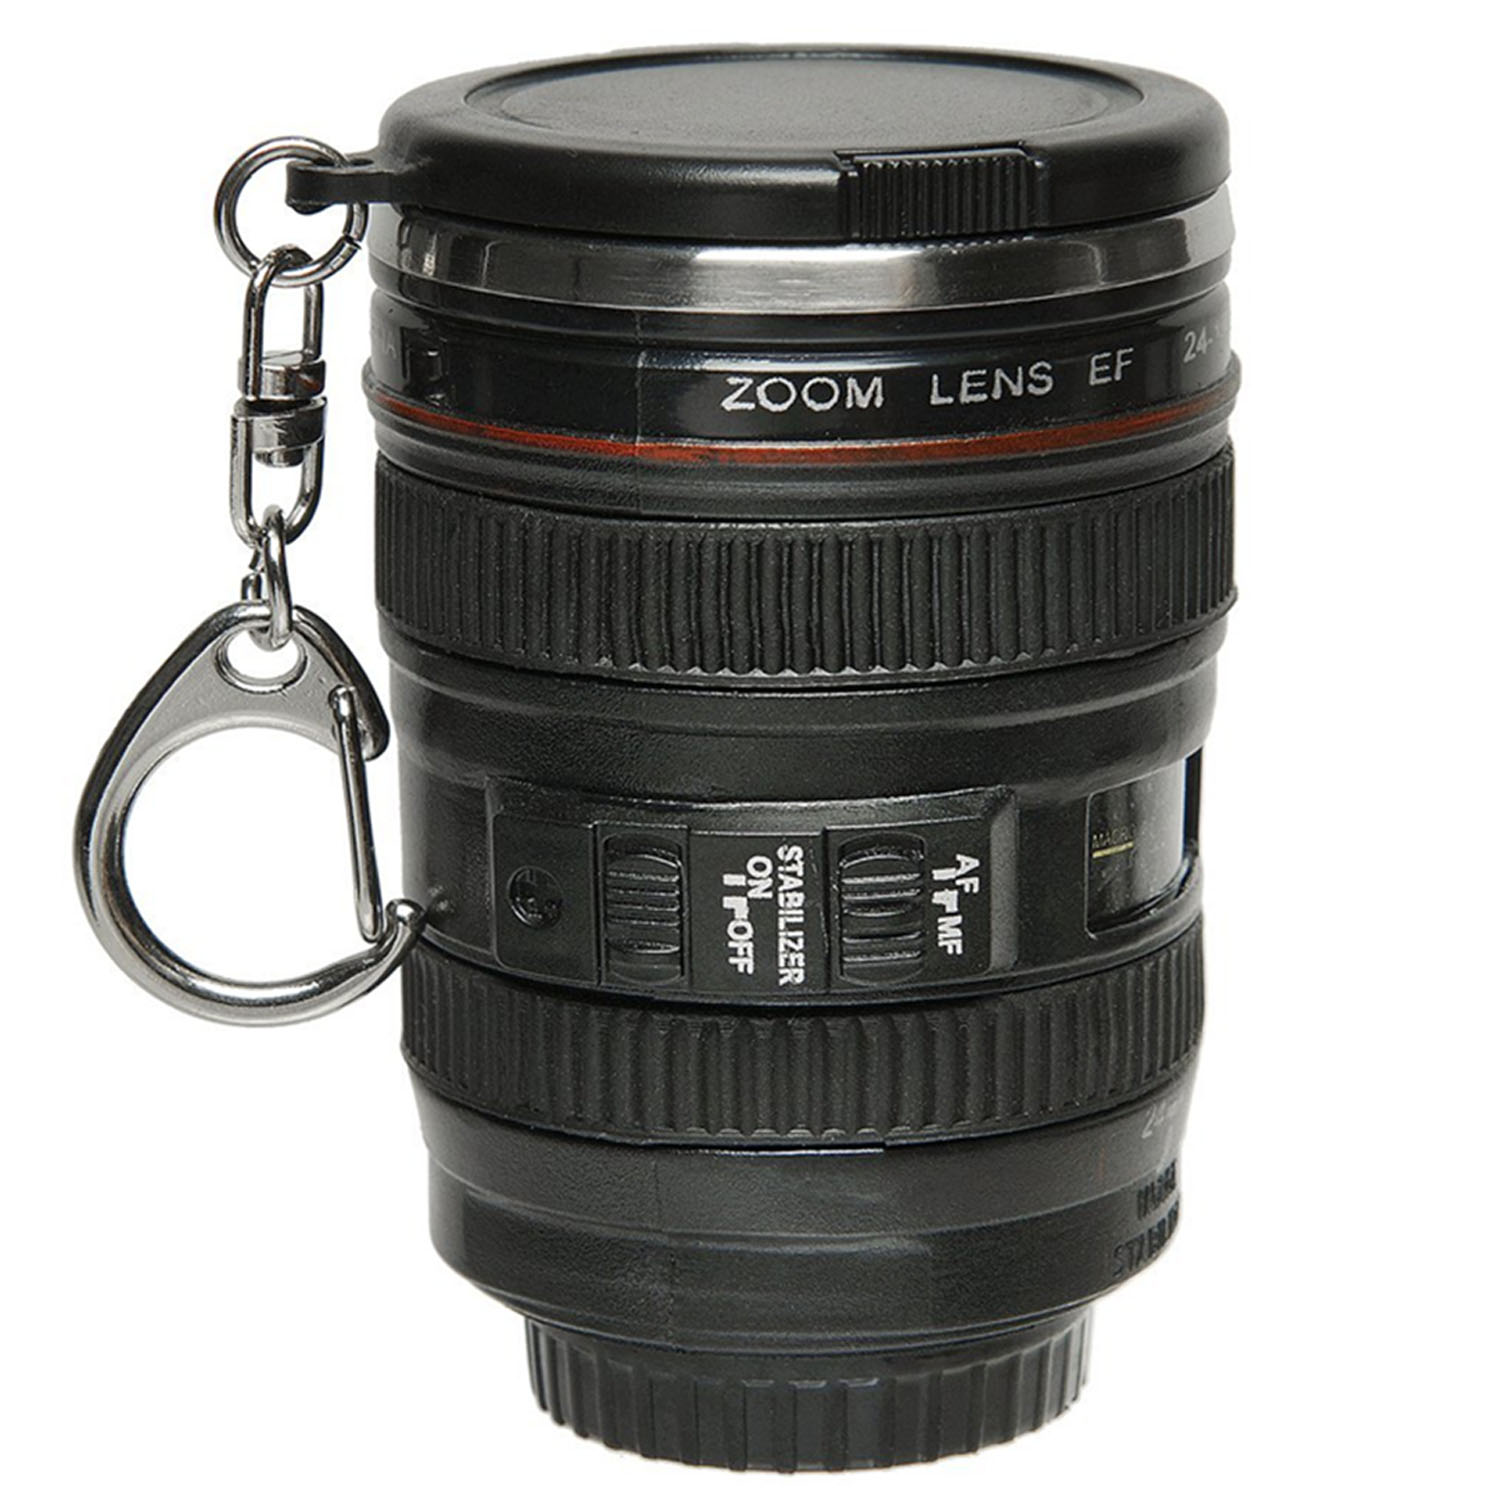 Behokic Mini Camera Lens Mug Cup 24 105mm 1 1 Coffee Coffe